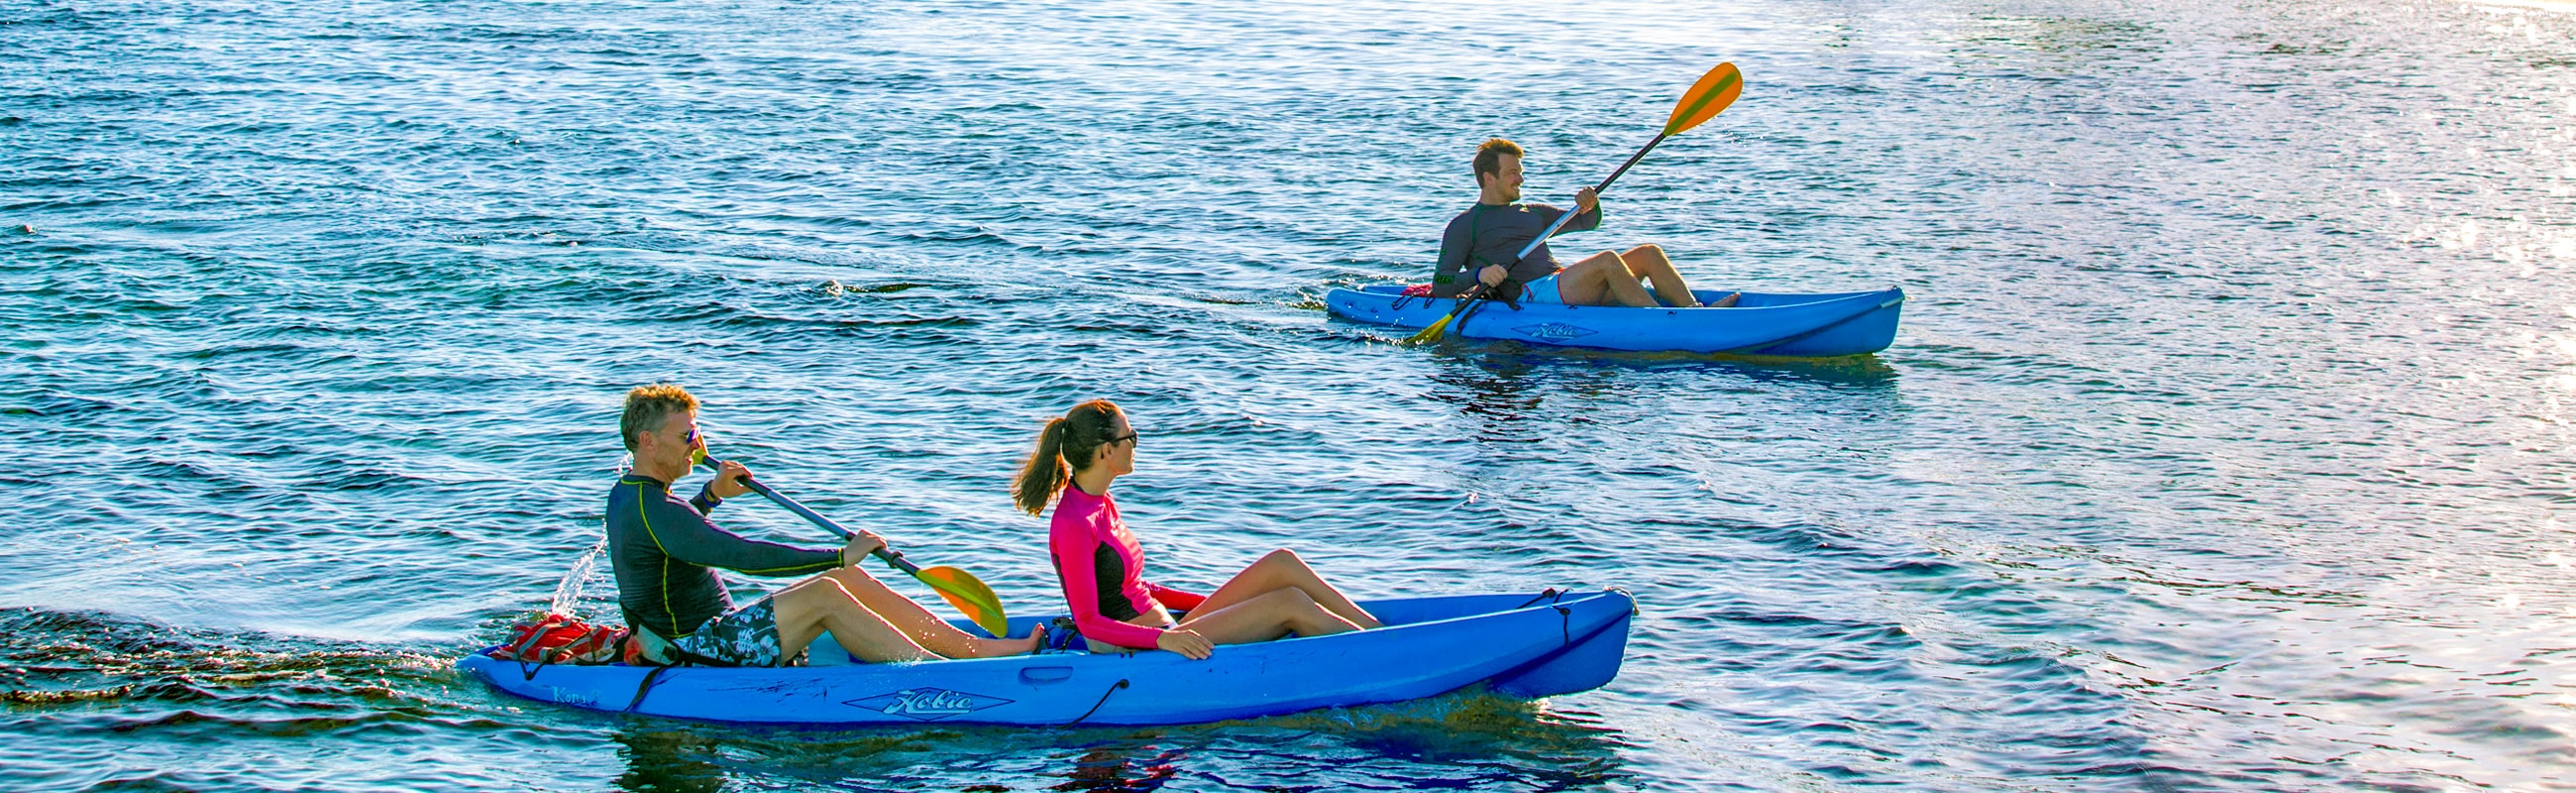 Our dive shop has kayaks for exploration of our coast in the calm waters inside the reef